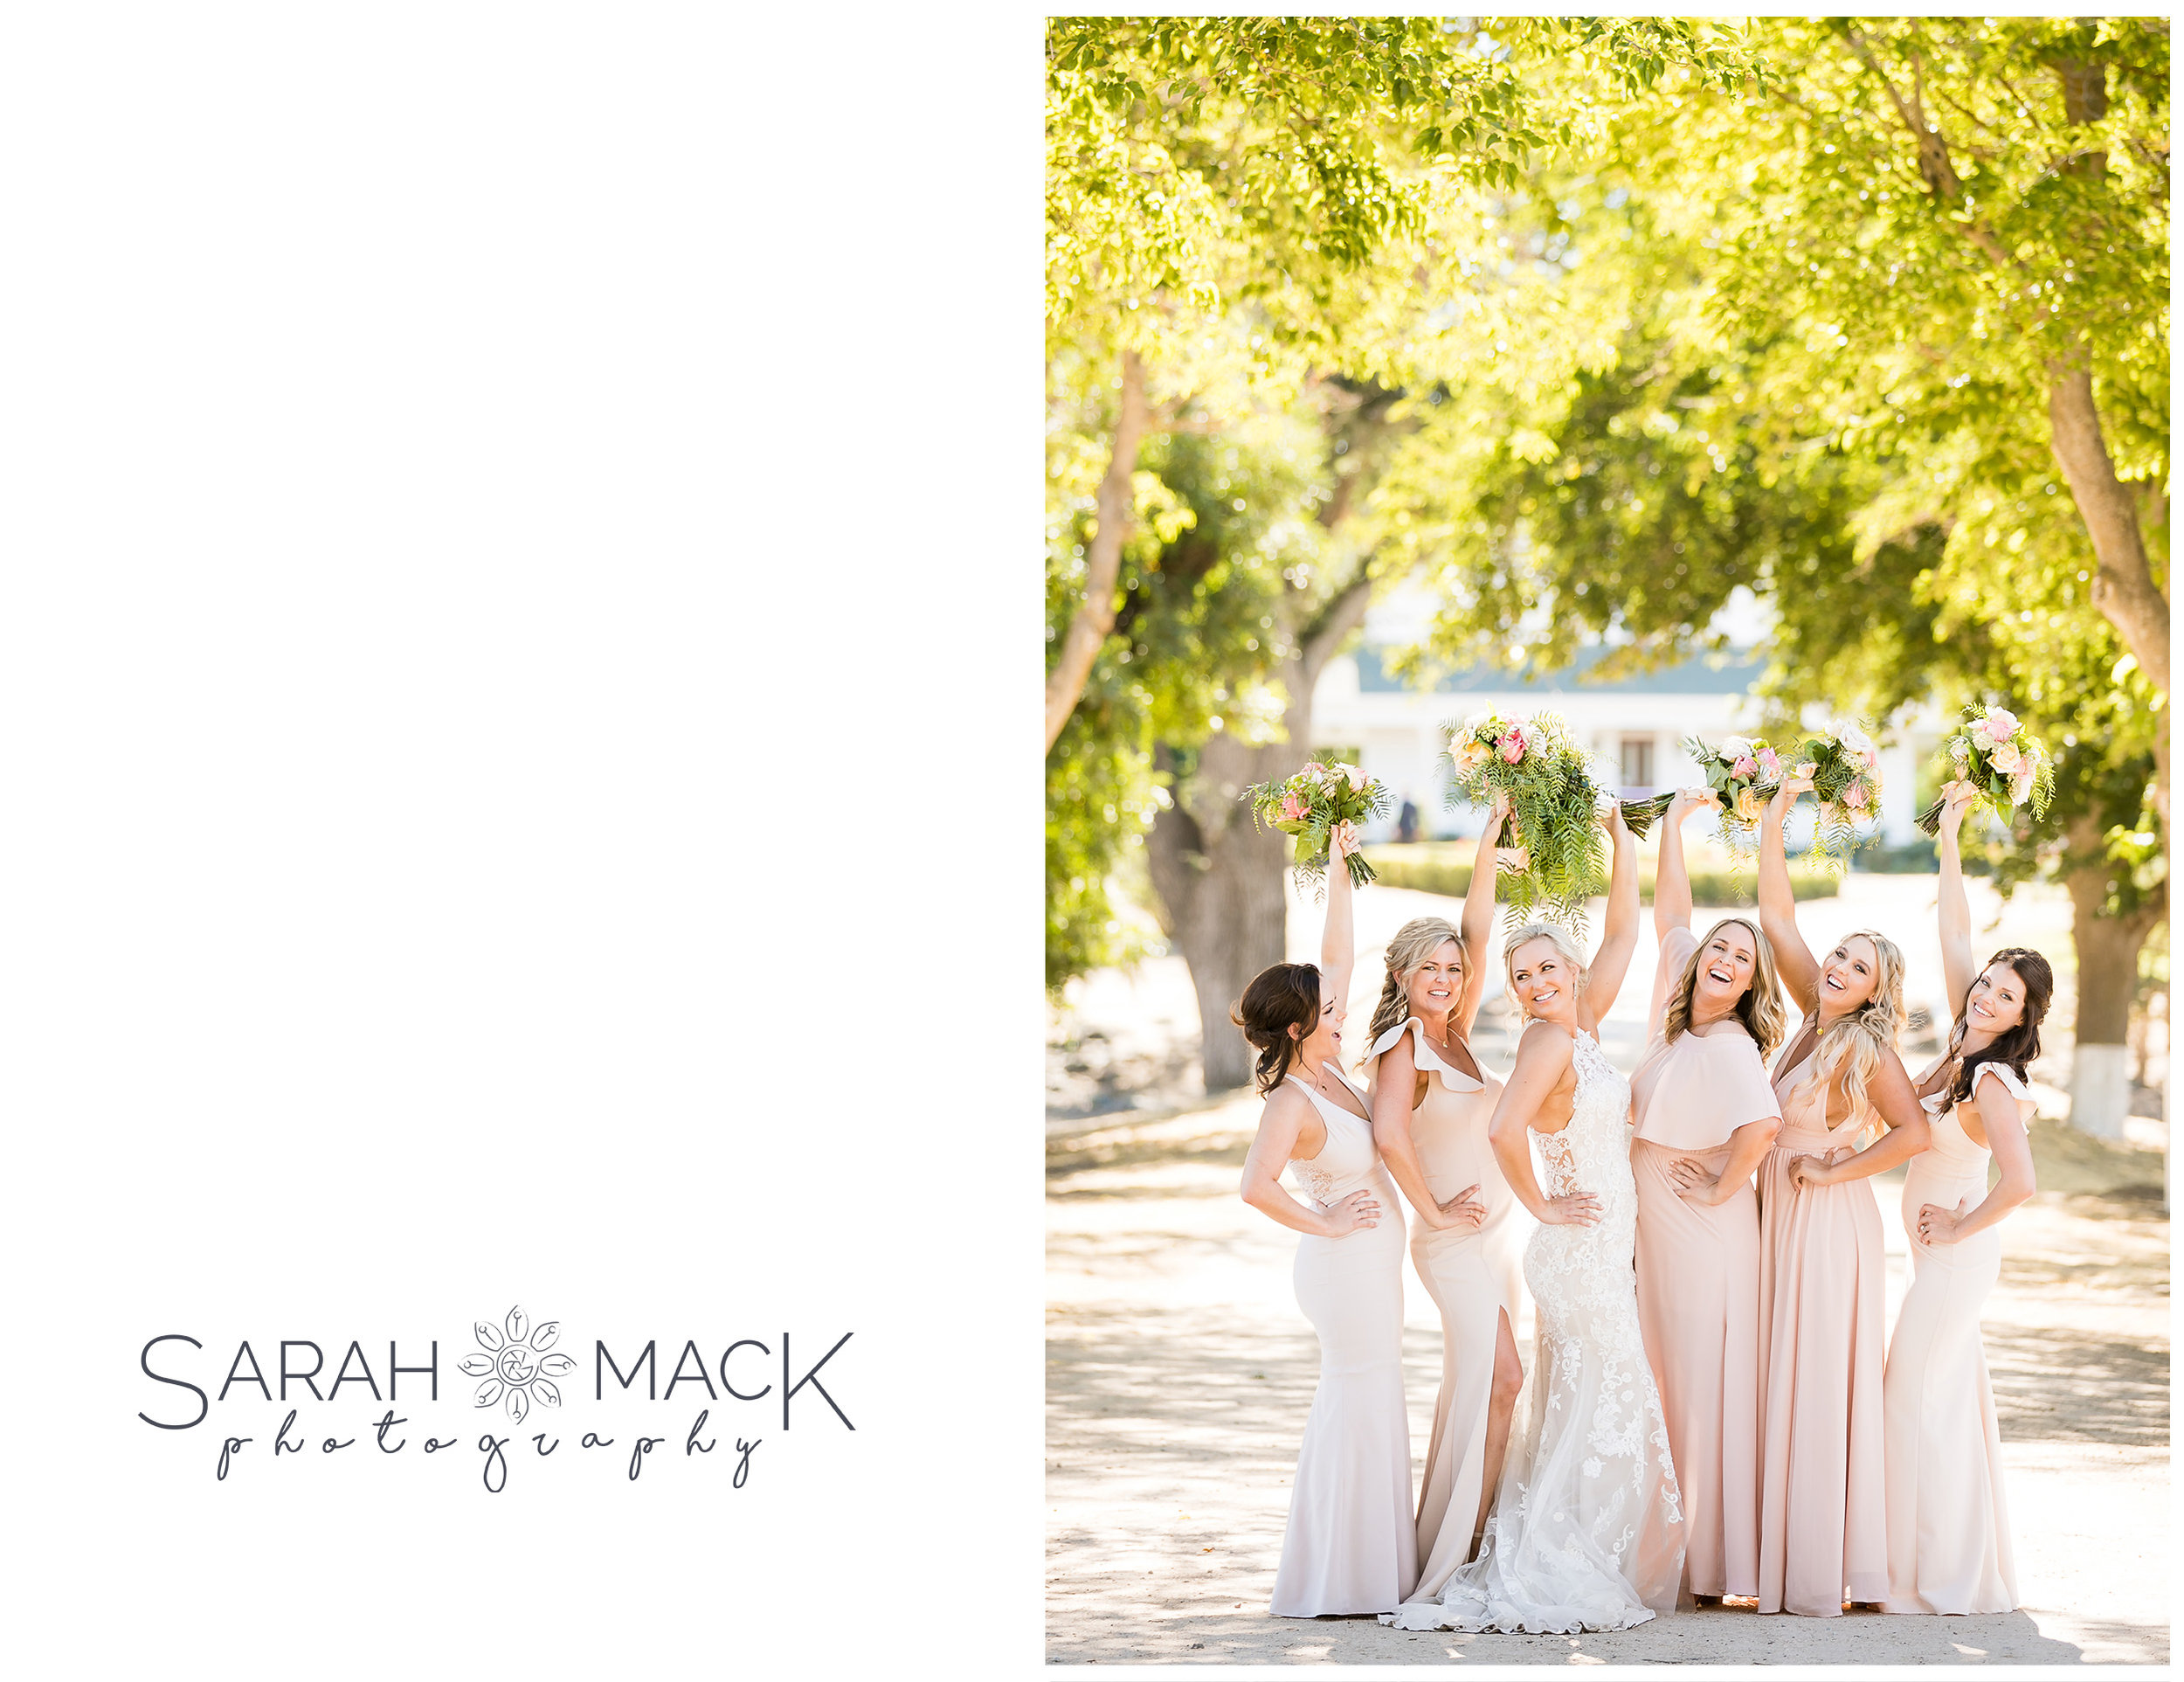 MA-Chandler-Ranch-Paso-Robles-Wedding-Photography-52.jpg